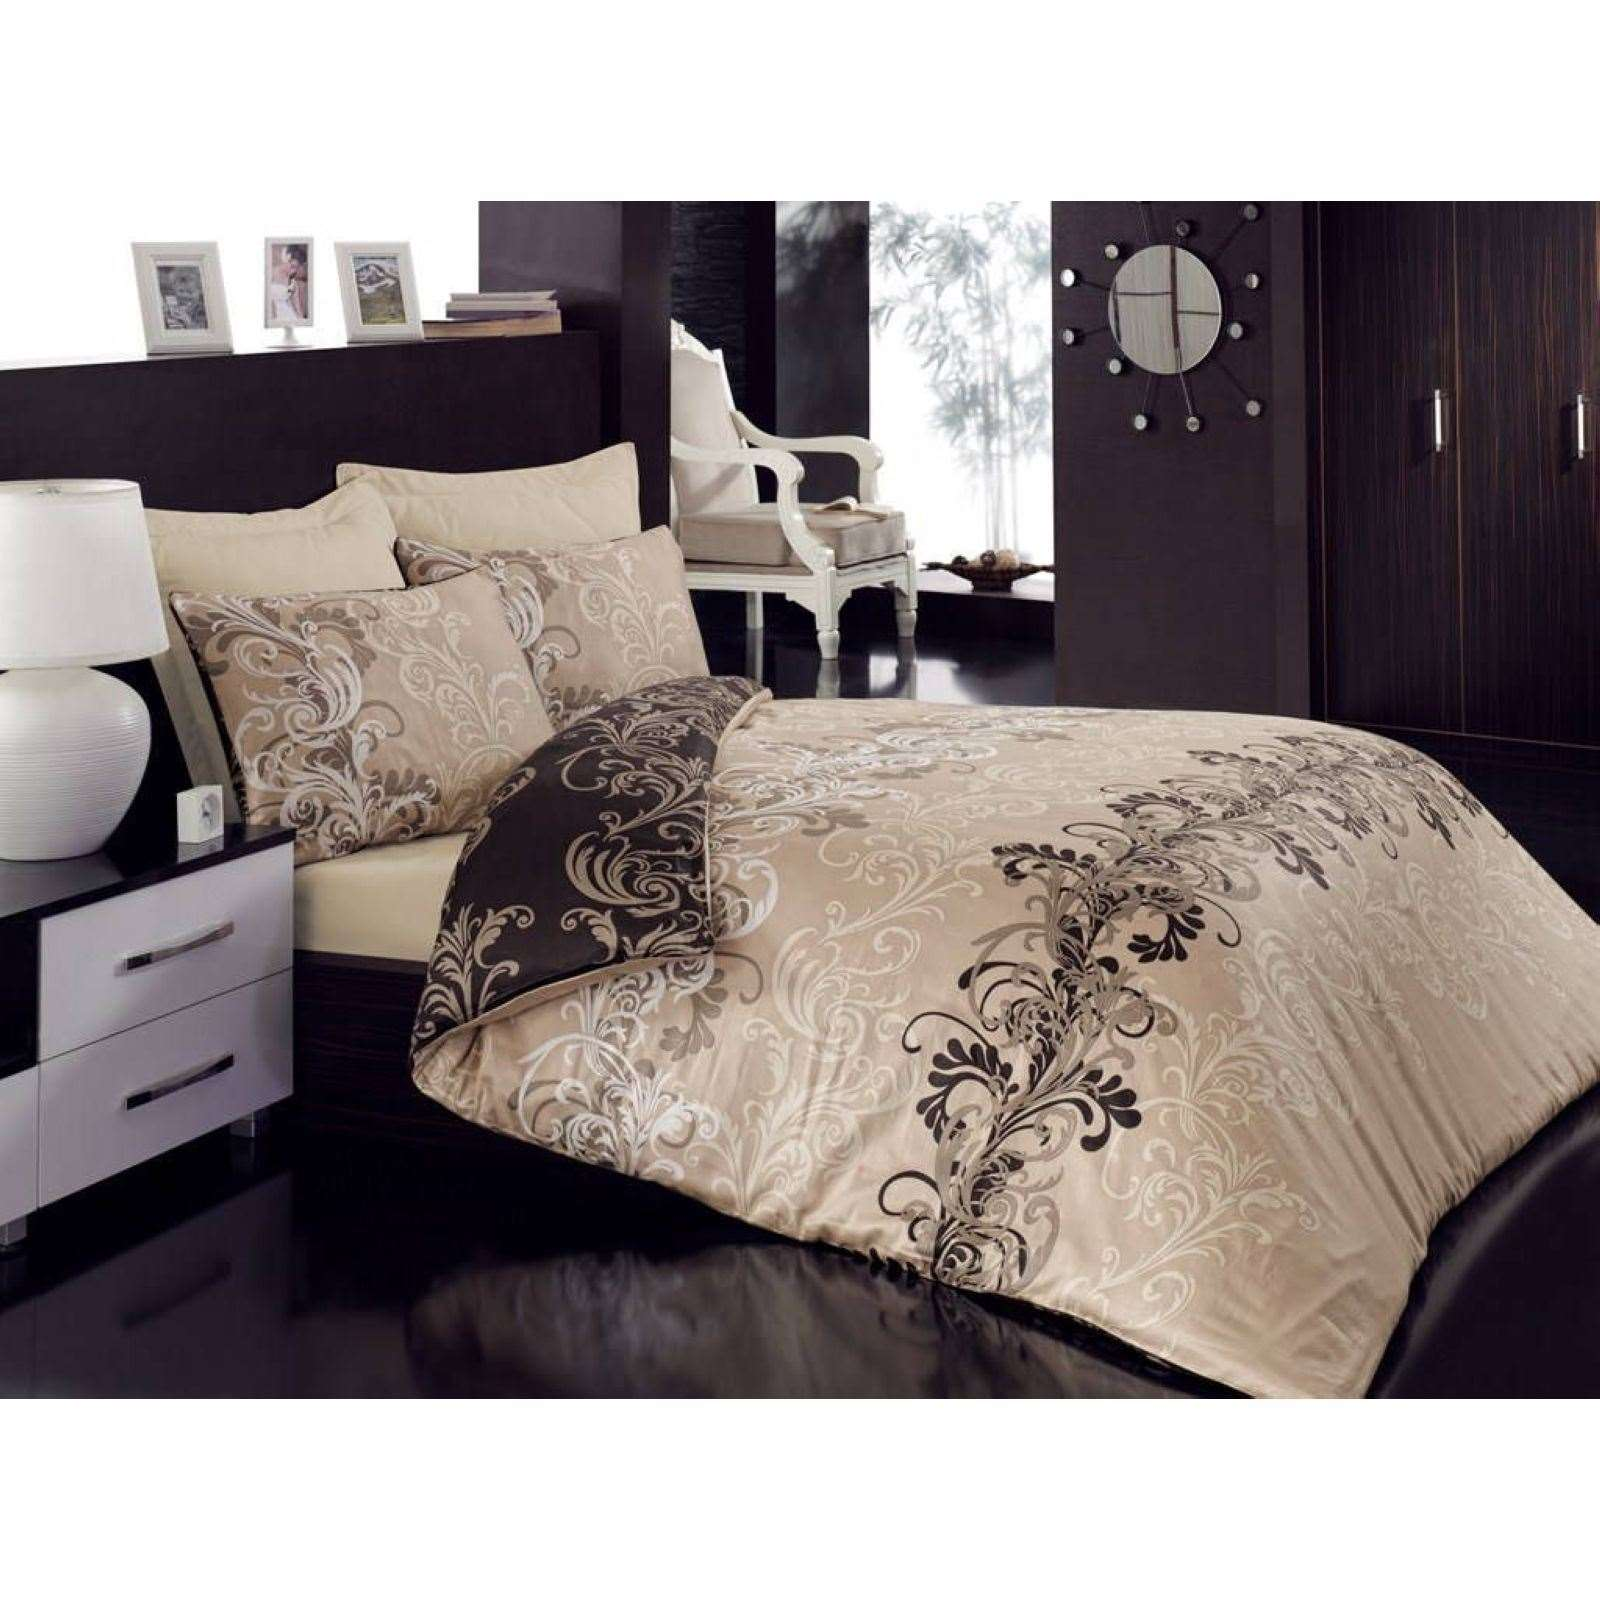 home sweet home parure de lit en satin de coton imprim. Black Bedroom Furniture Sets. Home Design Ideas